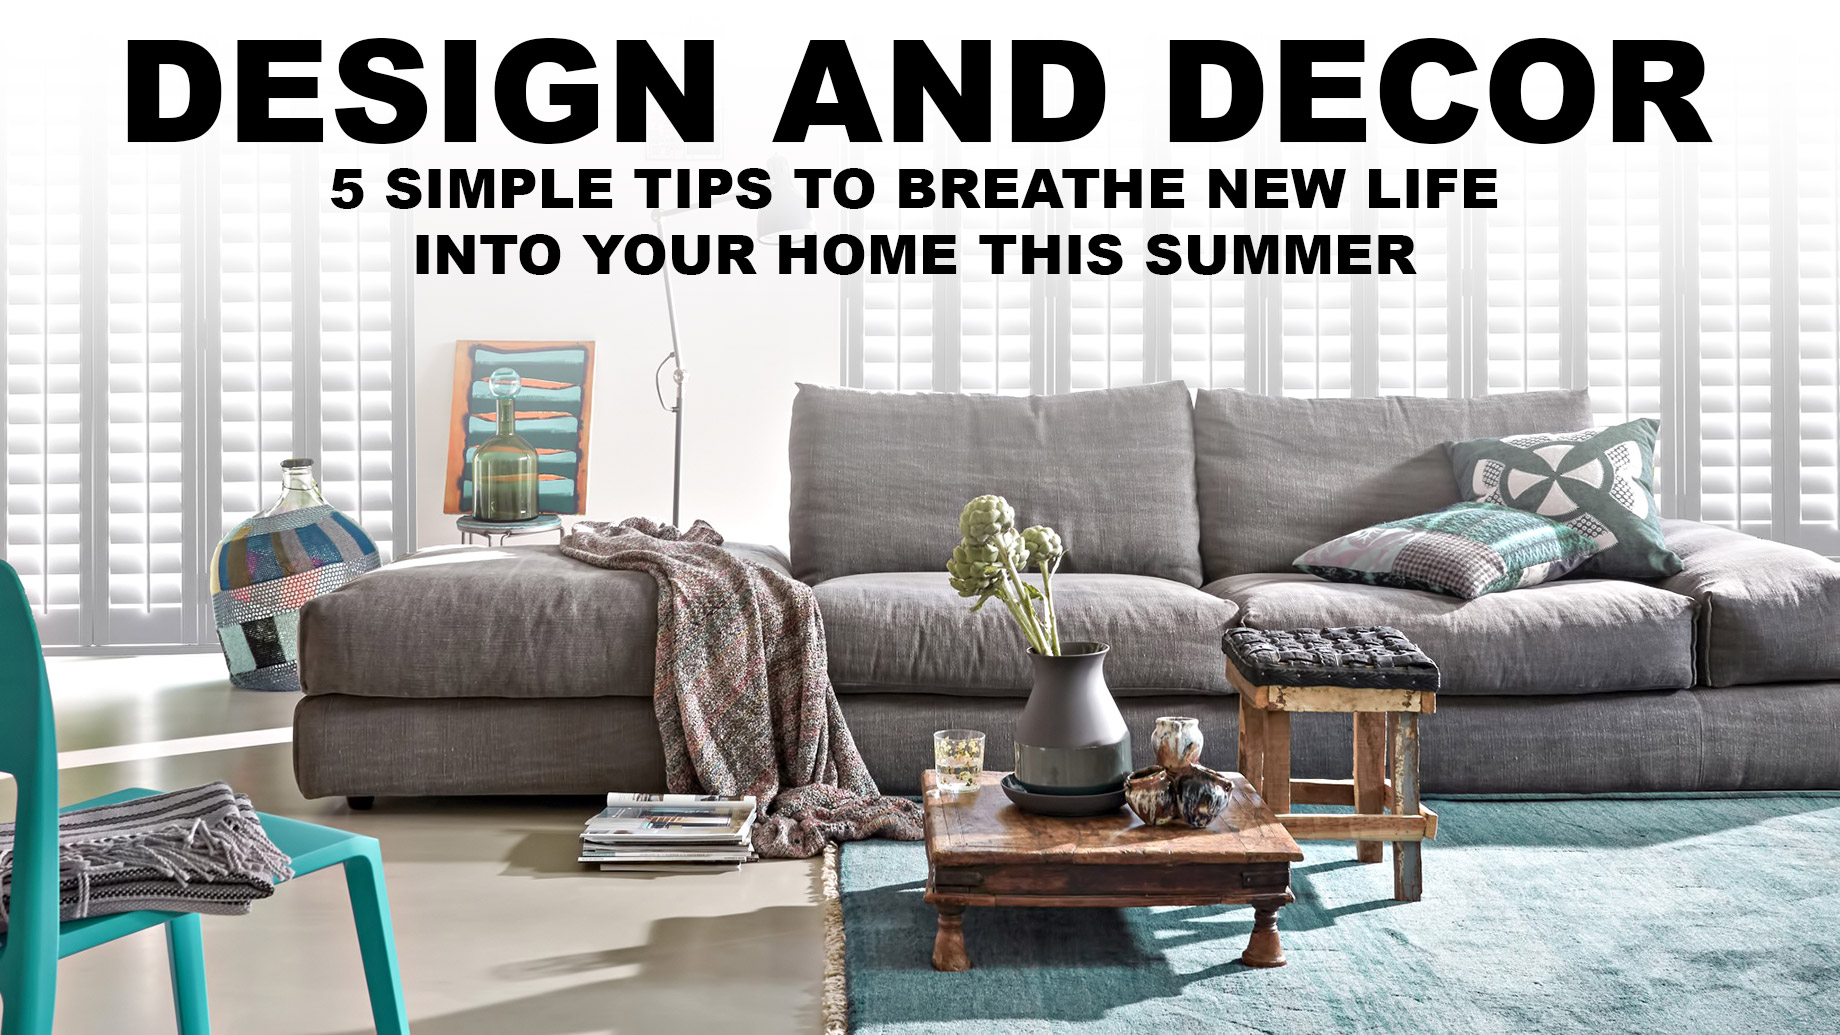 Design and Decor - 5 Simple Tips To Breathe New Life Into Your Home This Summer